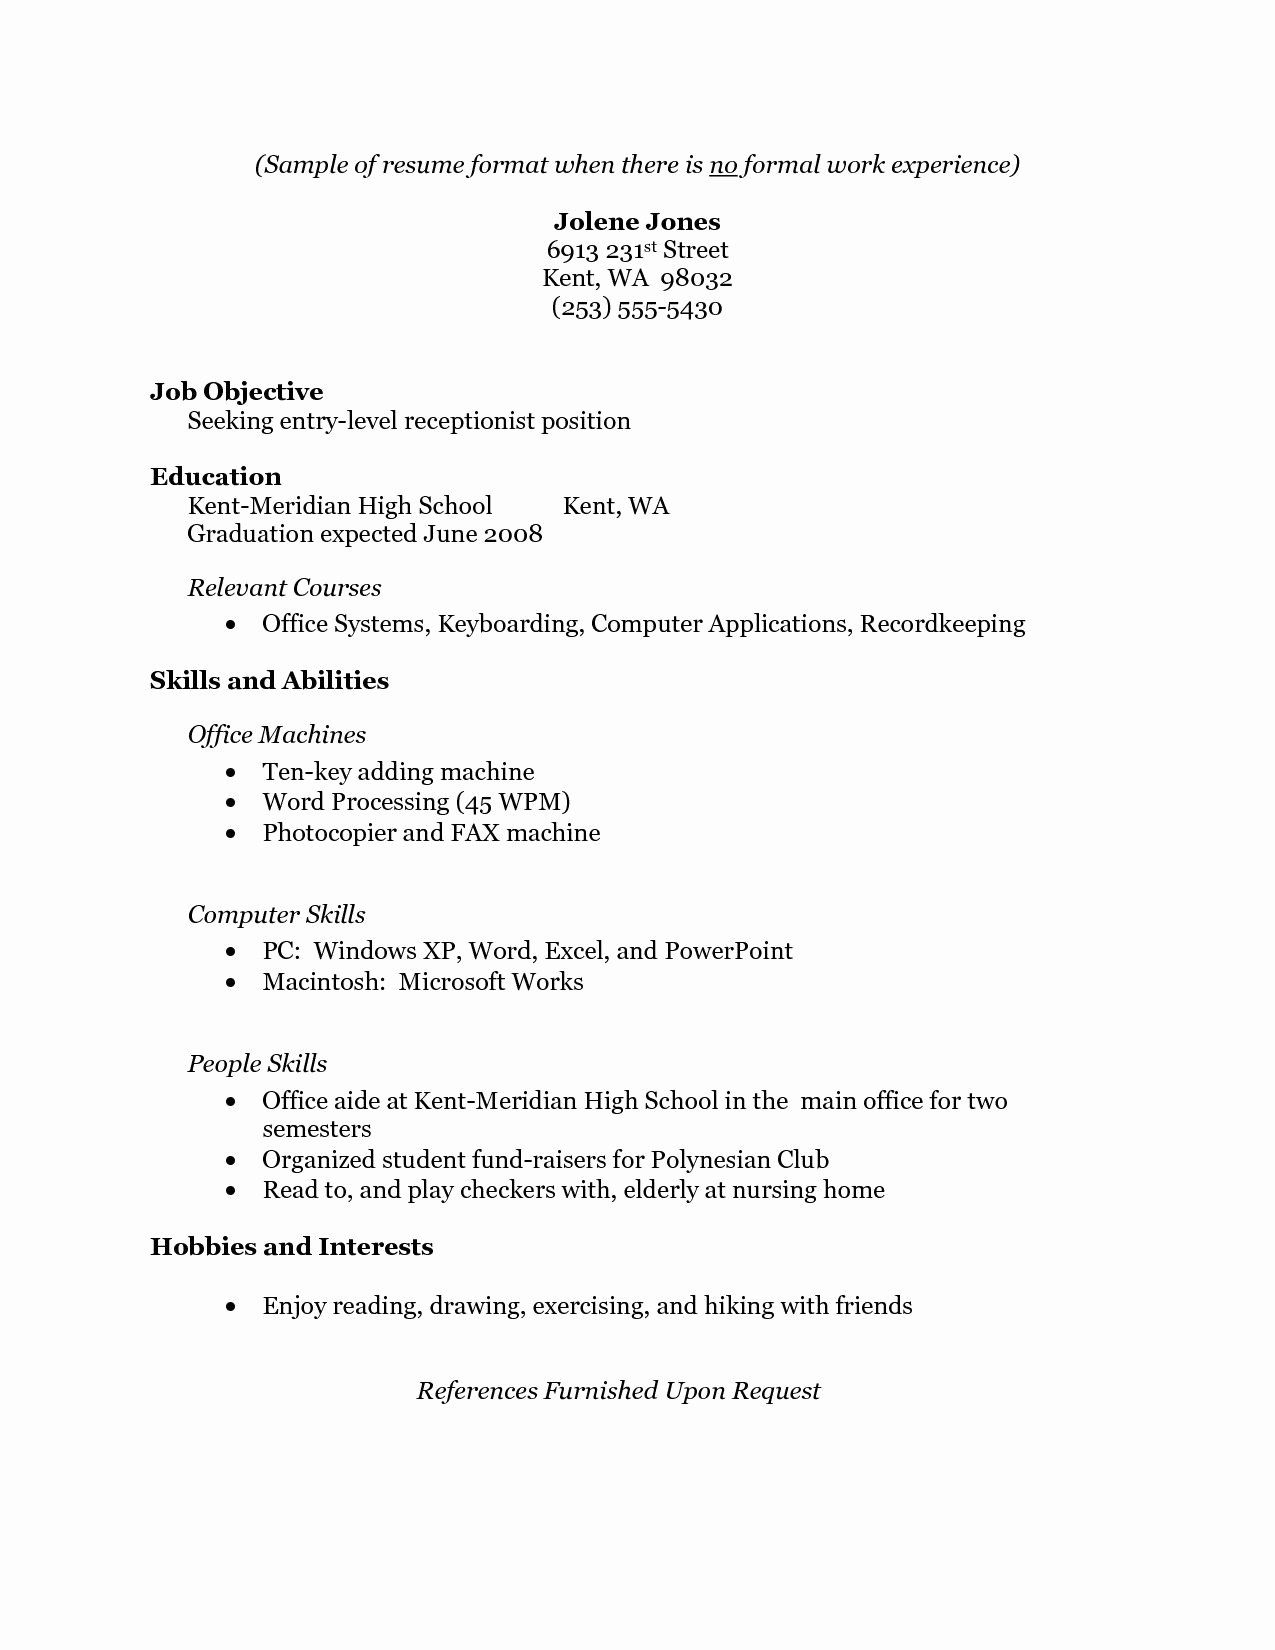 resume for receptionist with no experience printable template professional examples Resume Experience Professional Resume Examples